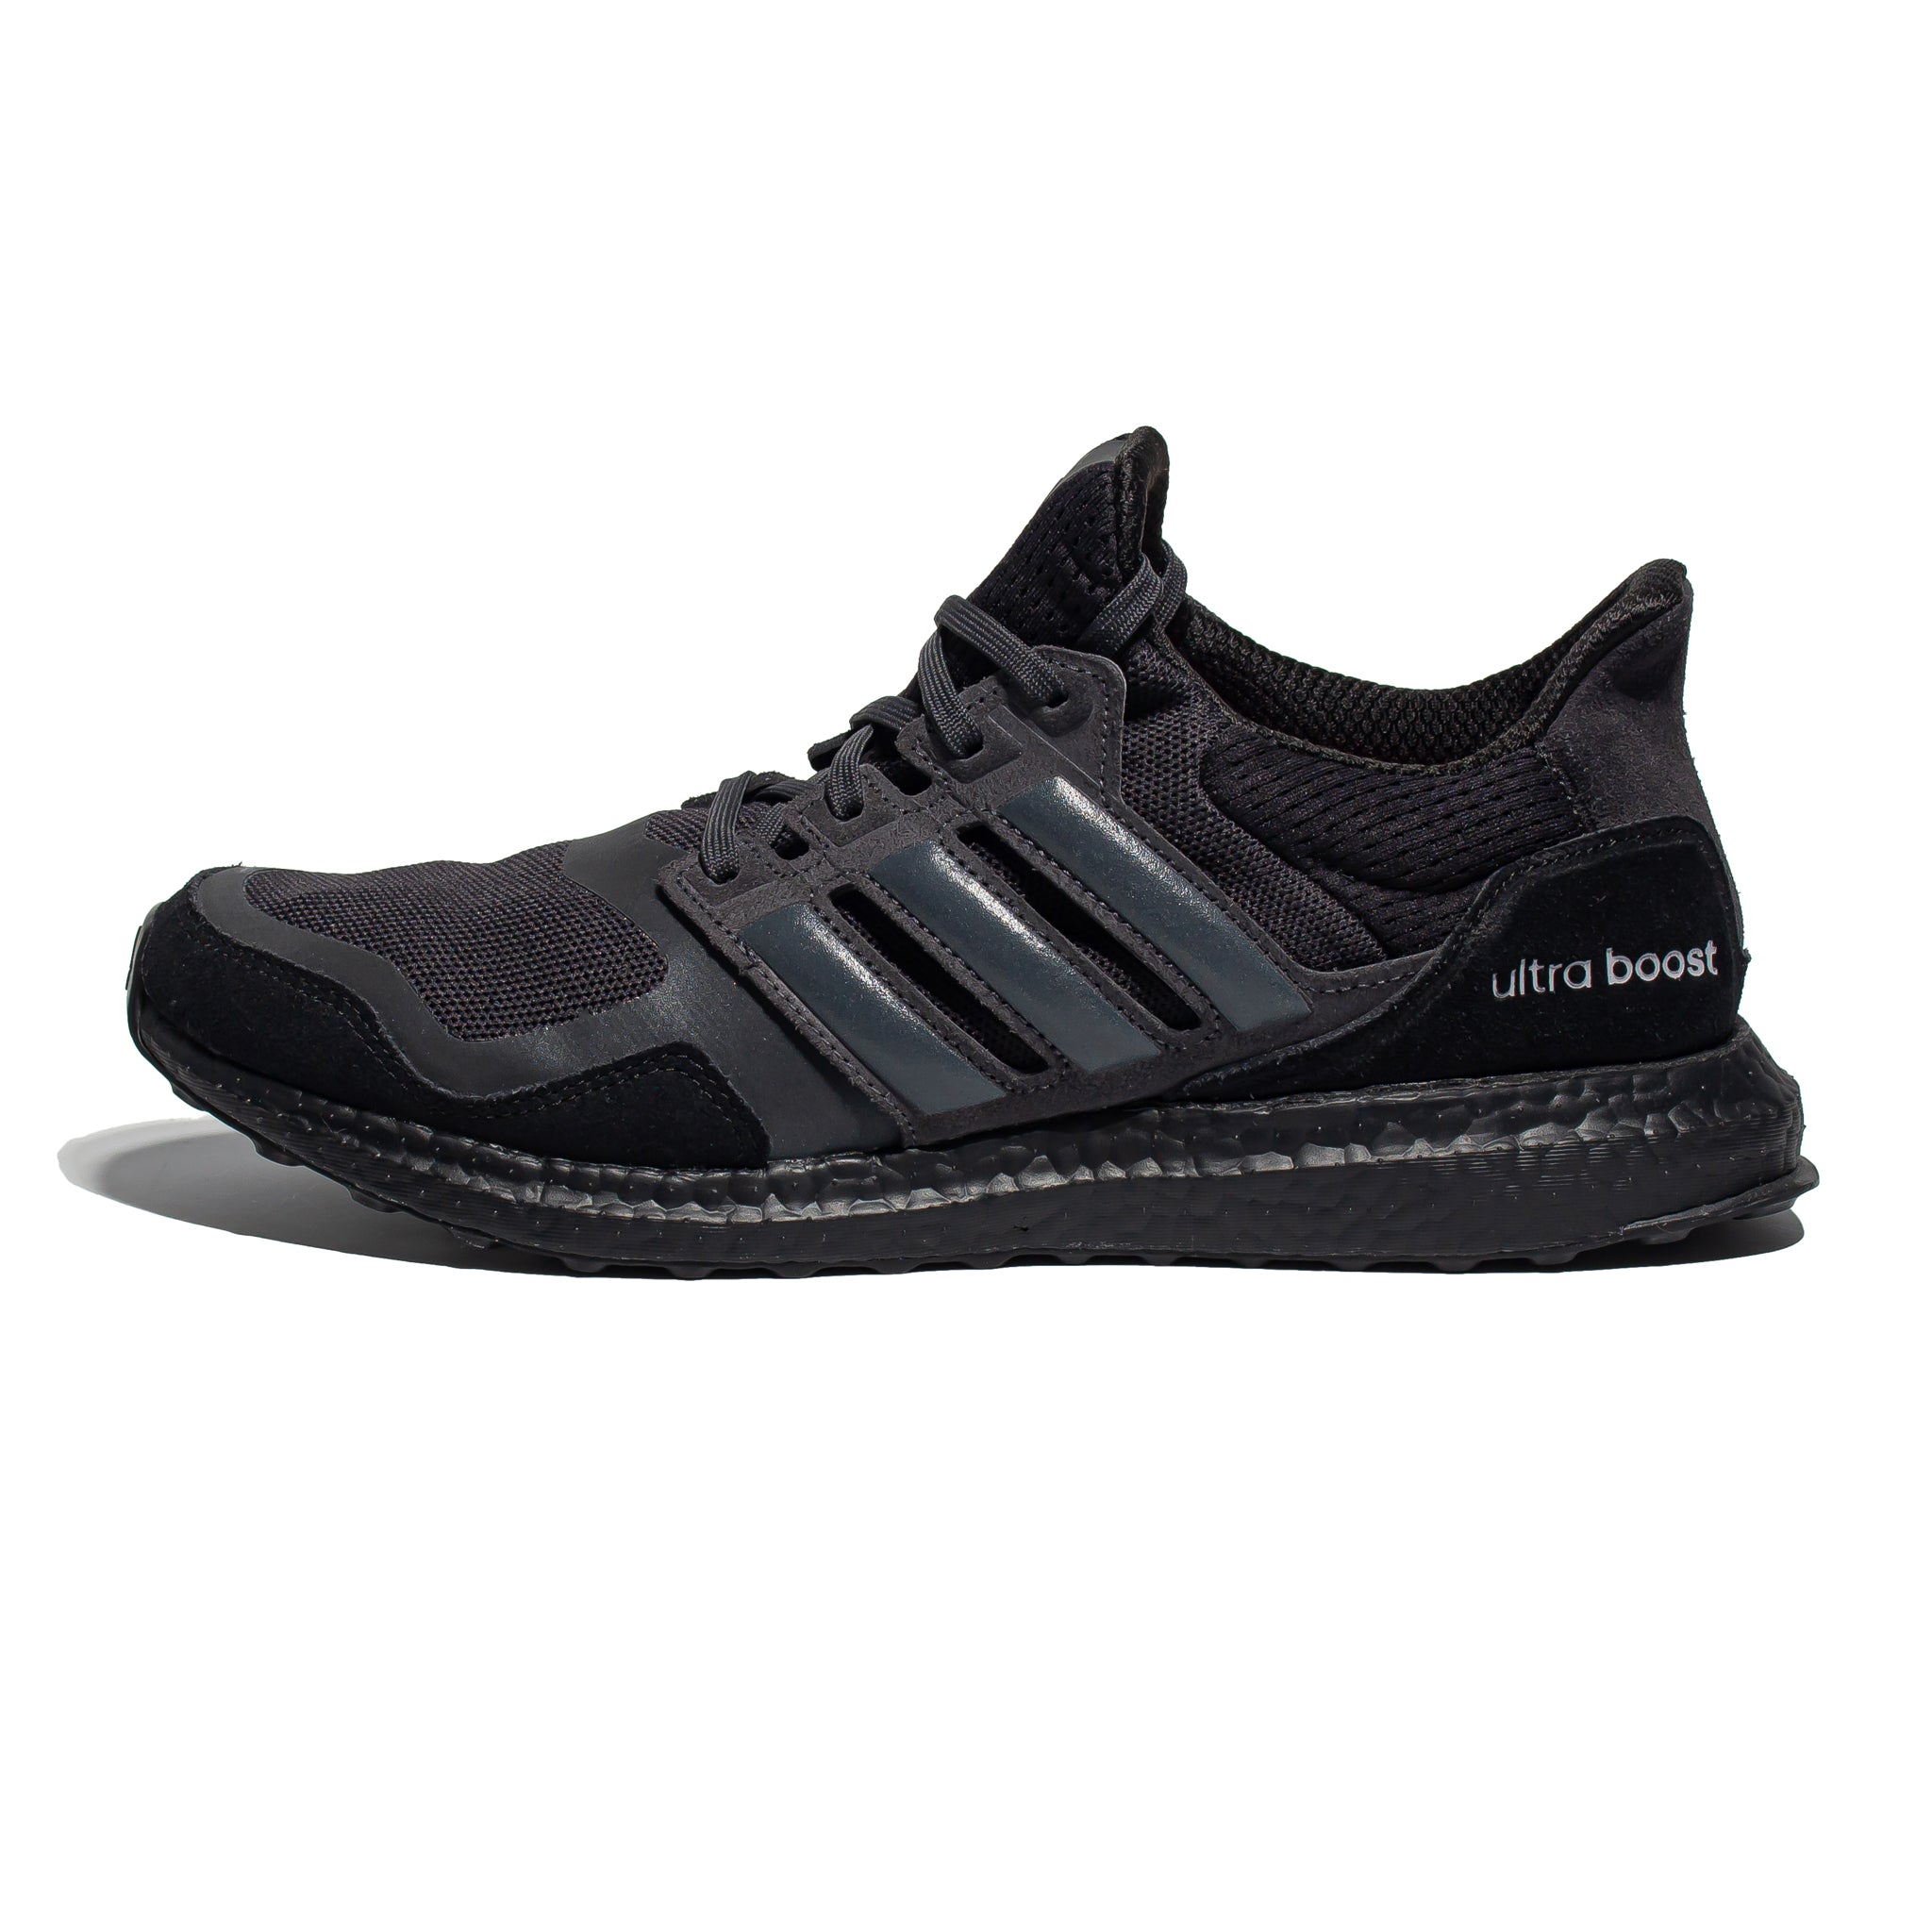 Adidas UltraBoost S&L Core Black/Carbon